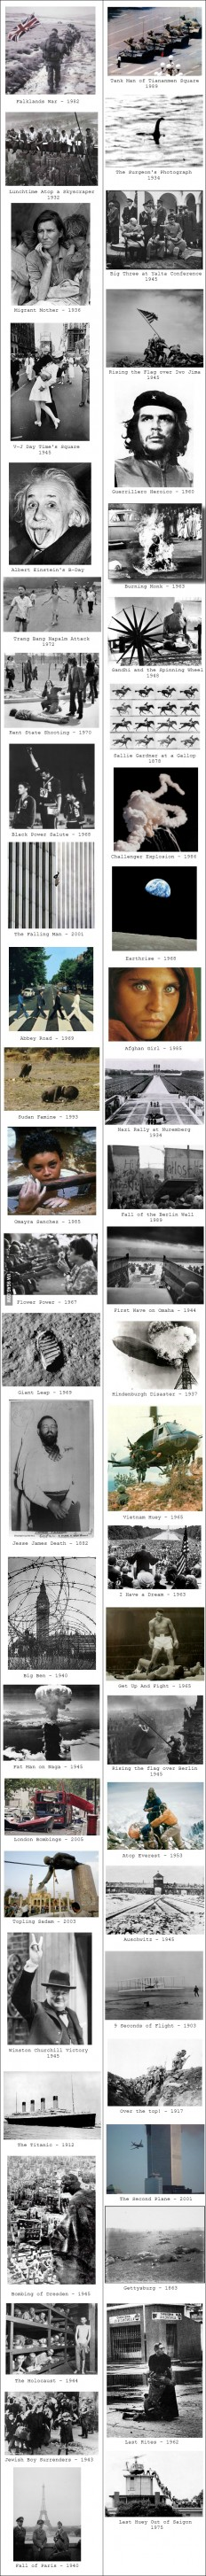 Iconic Pictures of the World - 9GAG